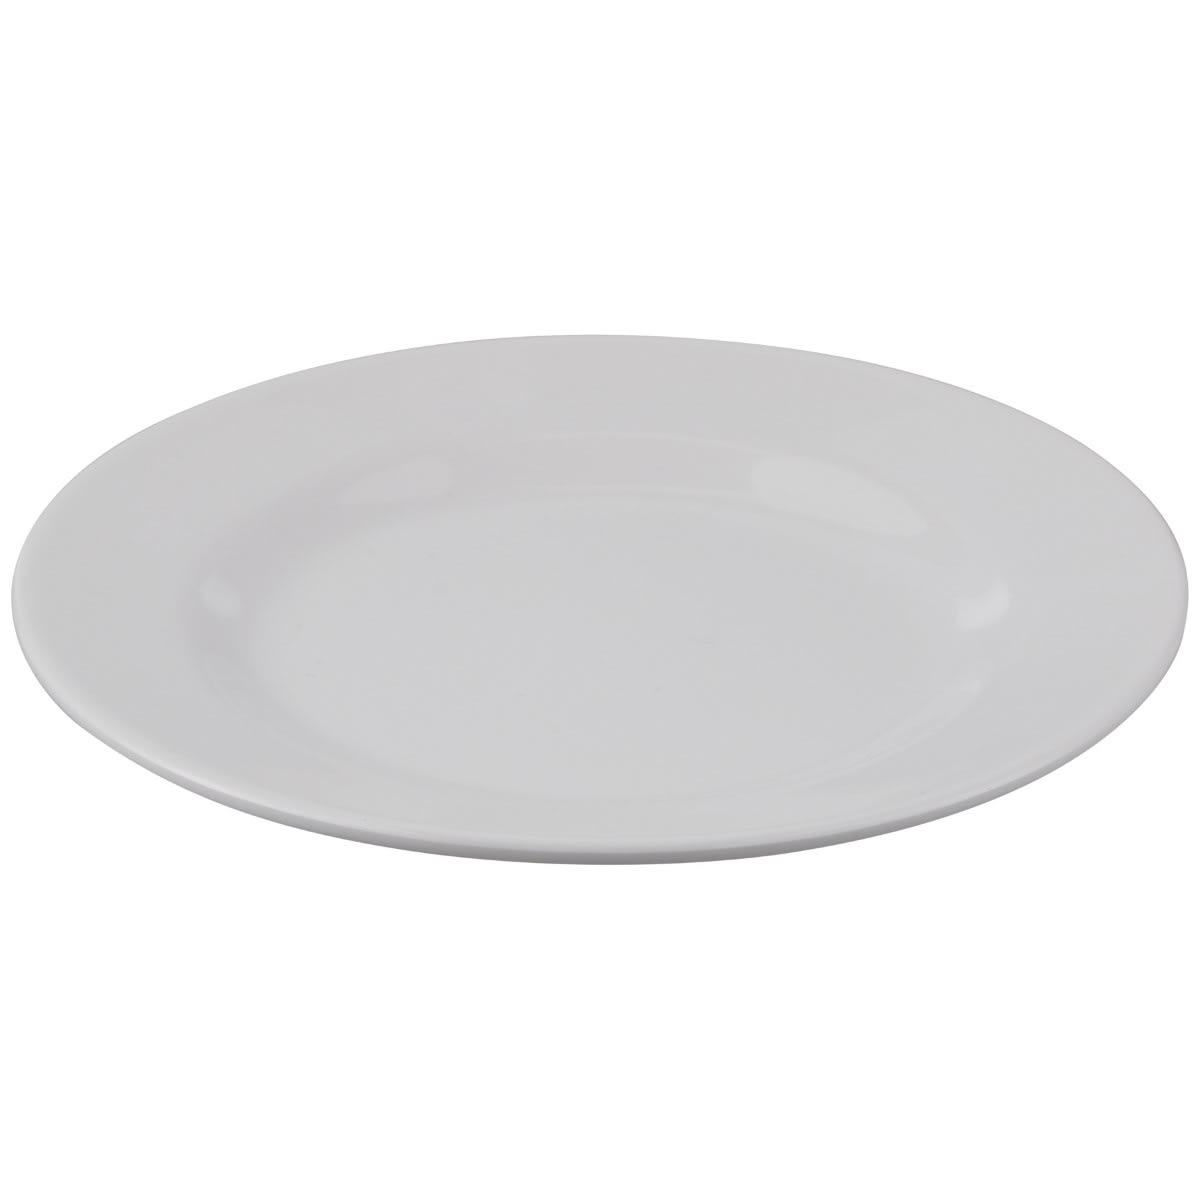 Natural Instincts Melamine Side Plate